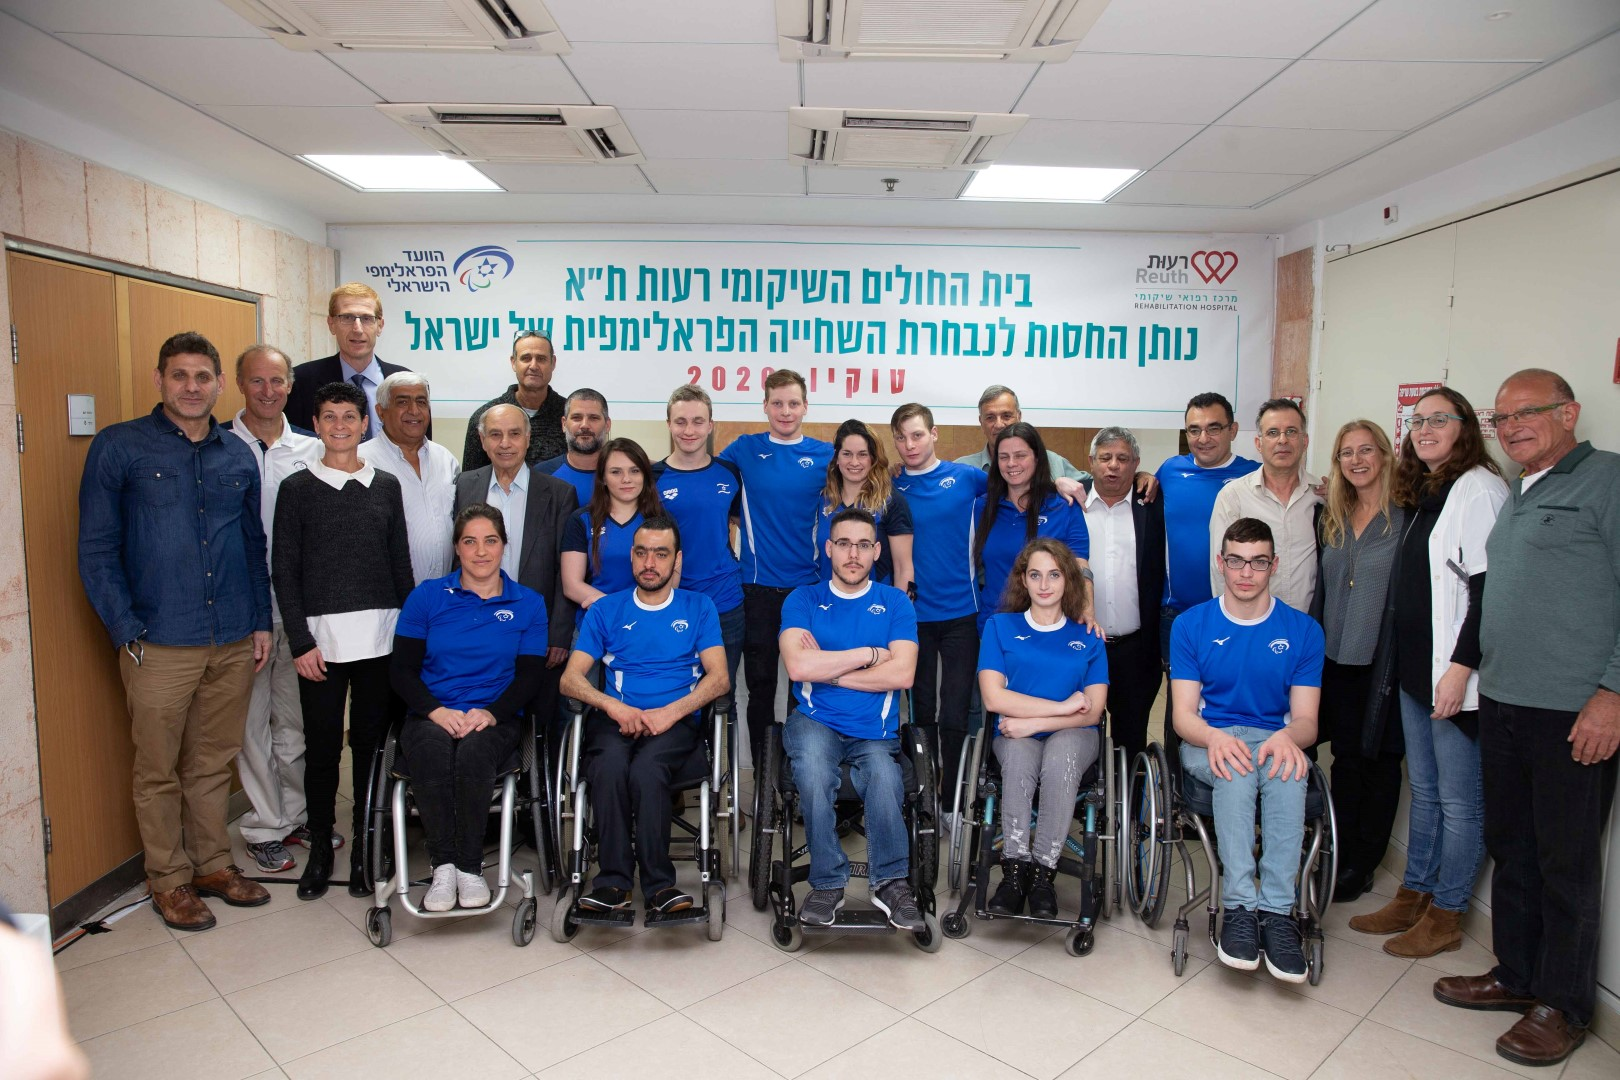 News from Israel: Paralympic Swimming Team